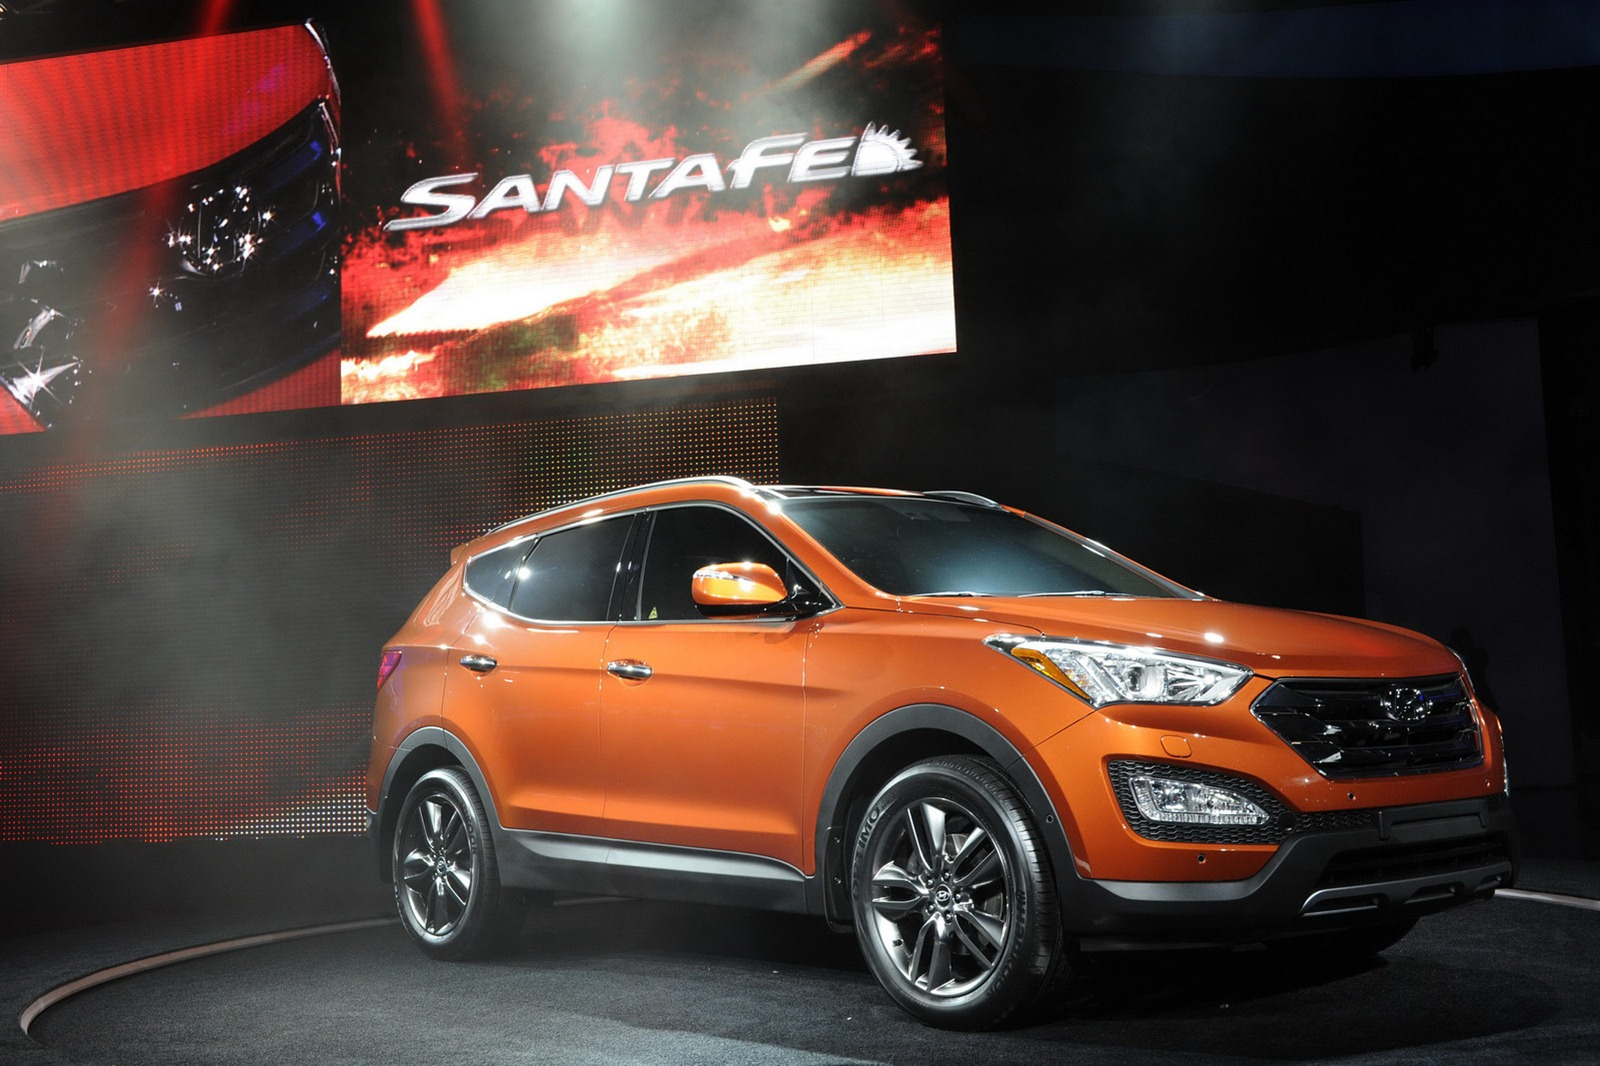 2018 Hyundai Santa Fe US Version photo - 5